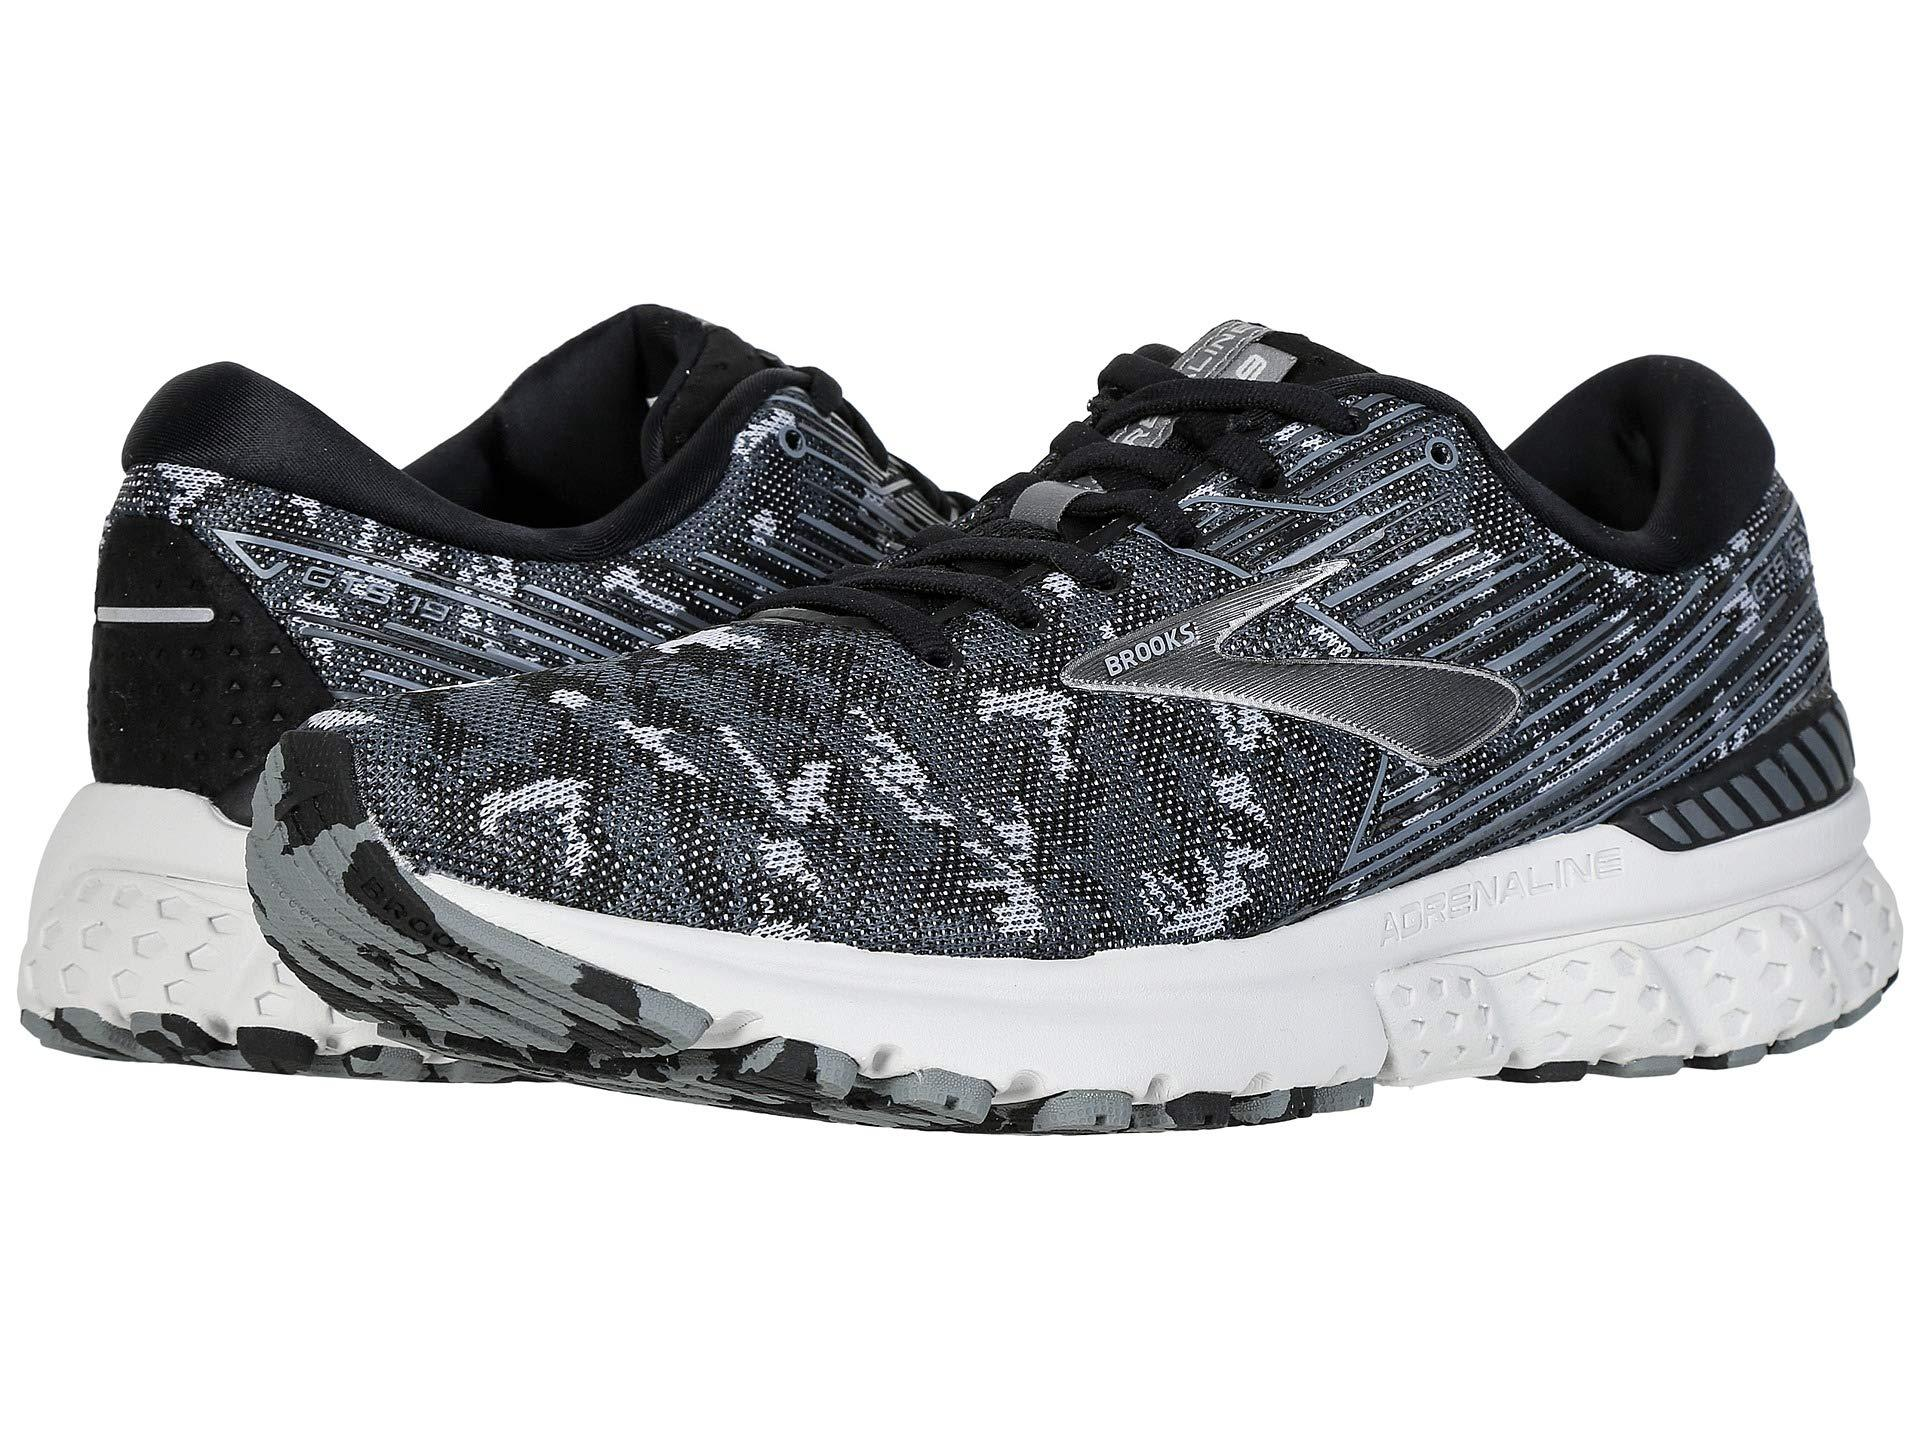 7a9c3de059055 Brooks - Black Adrenaline Gts 19 (white grey navy) Men s Running Shoes.  View fullscreen